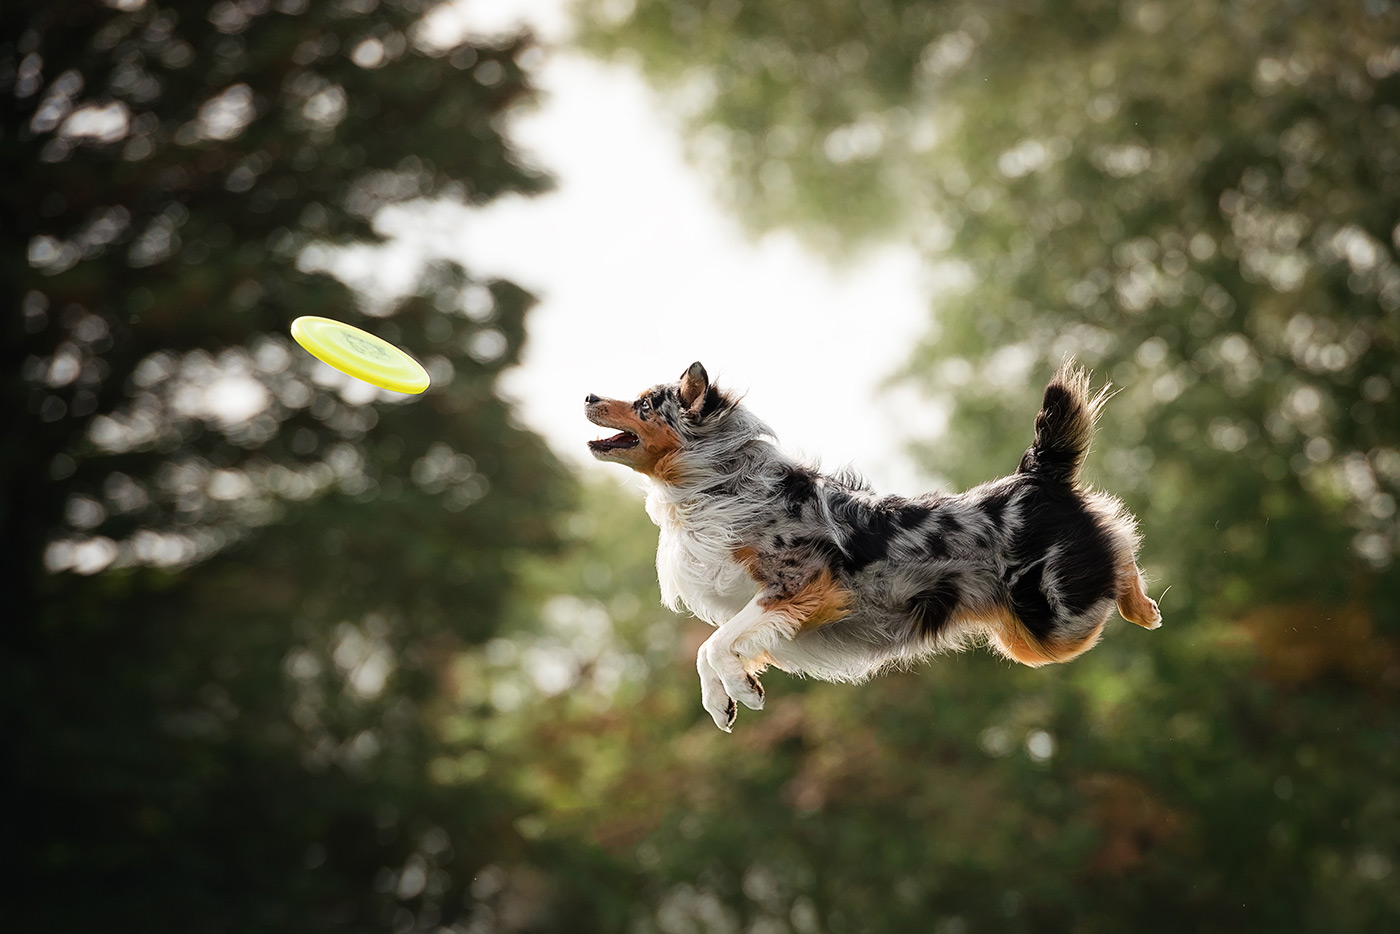 autralian-shepherd-dog-jumping-to-catch-disc